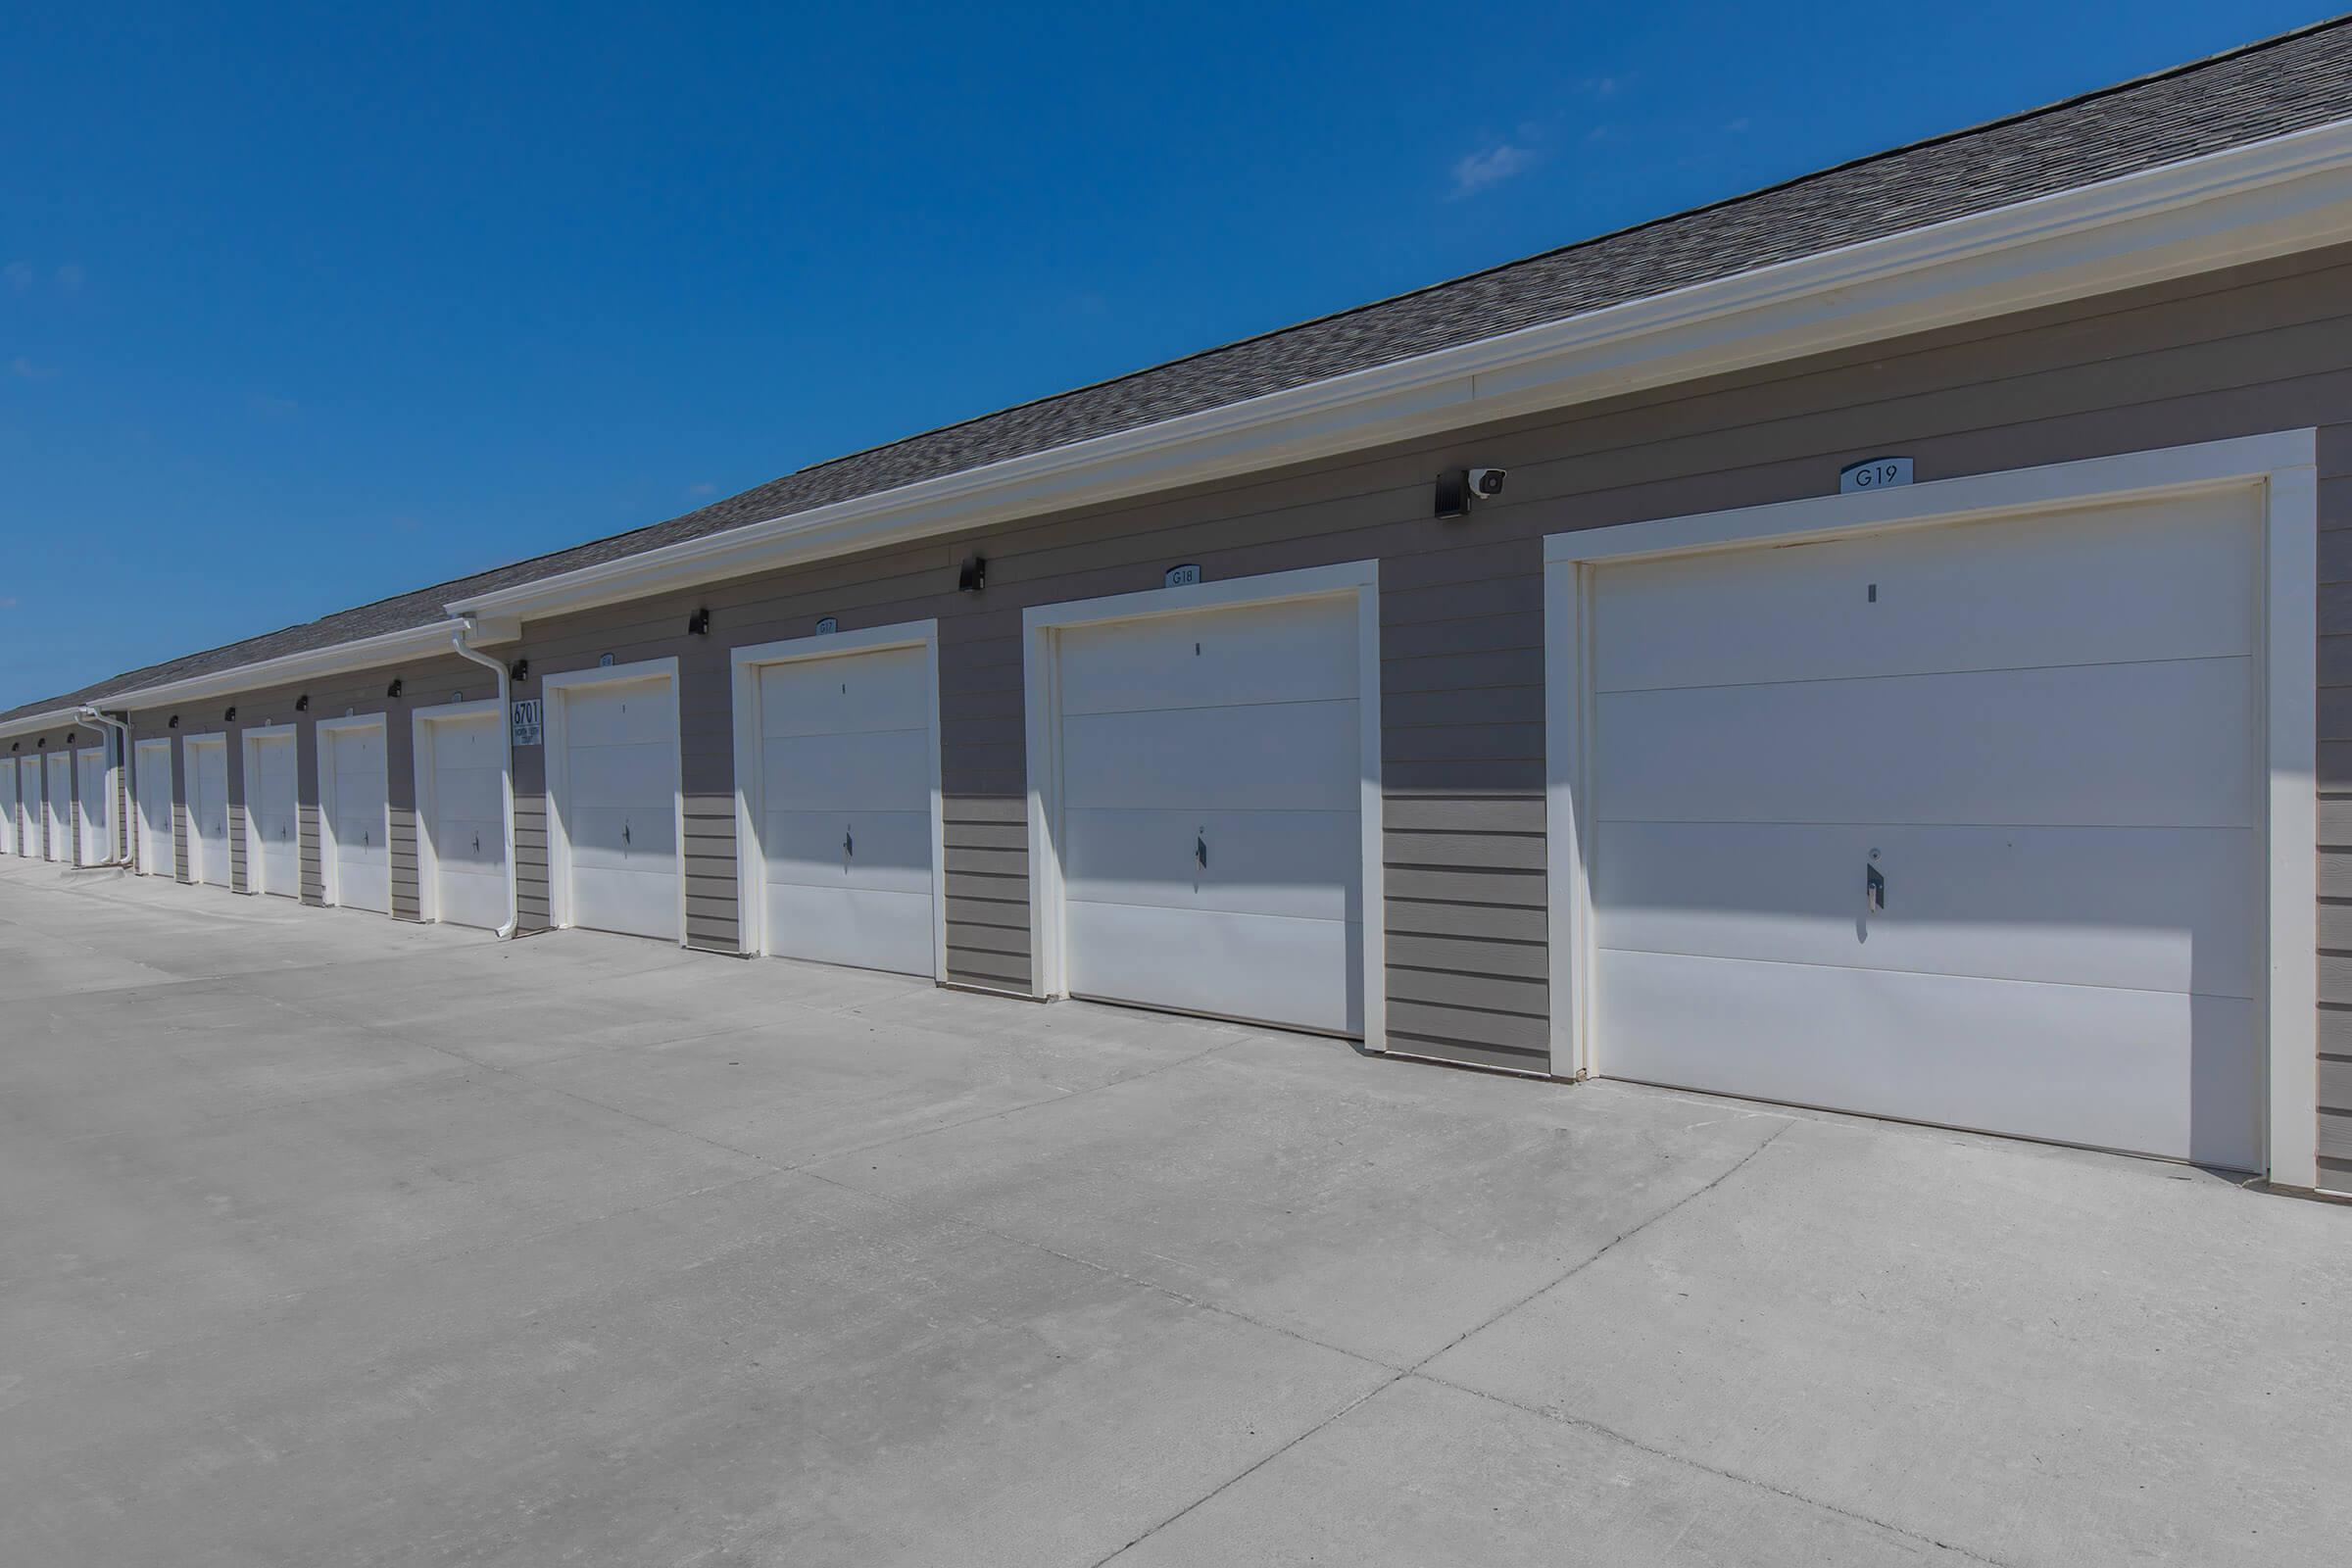 DETACHED GARAGES AND STORAGE UNITS AVAILABLE